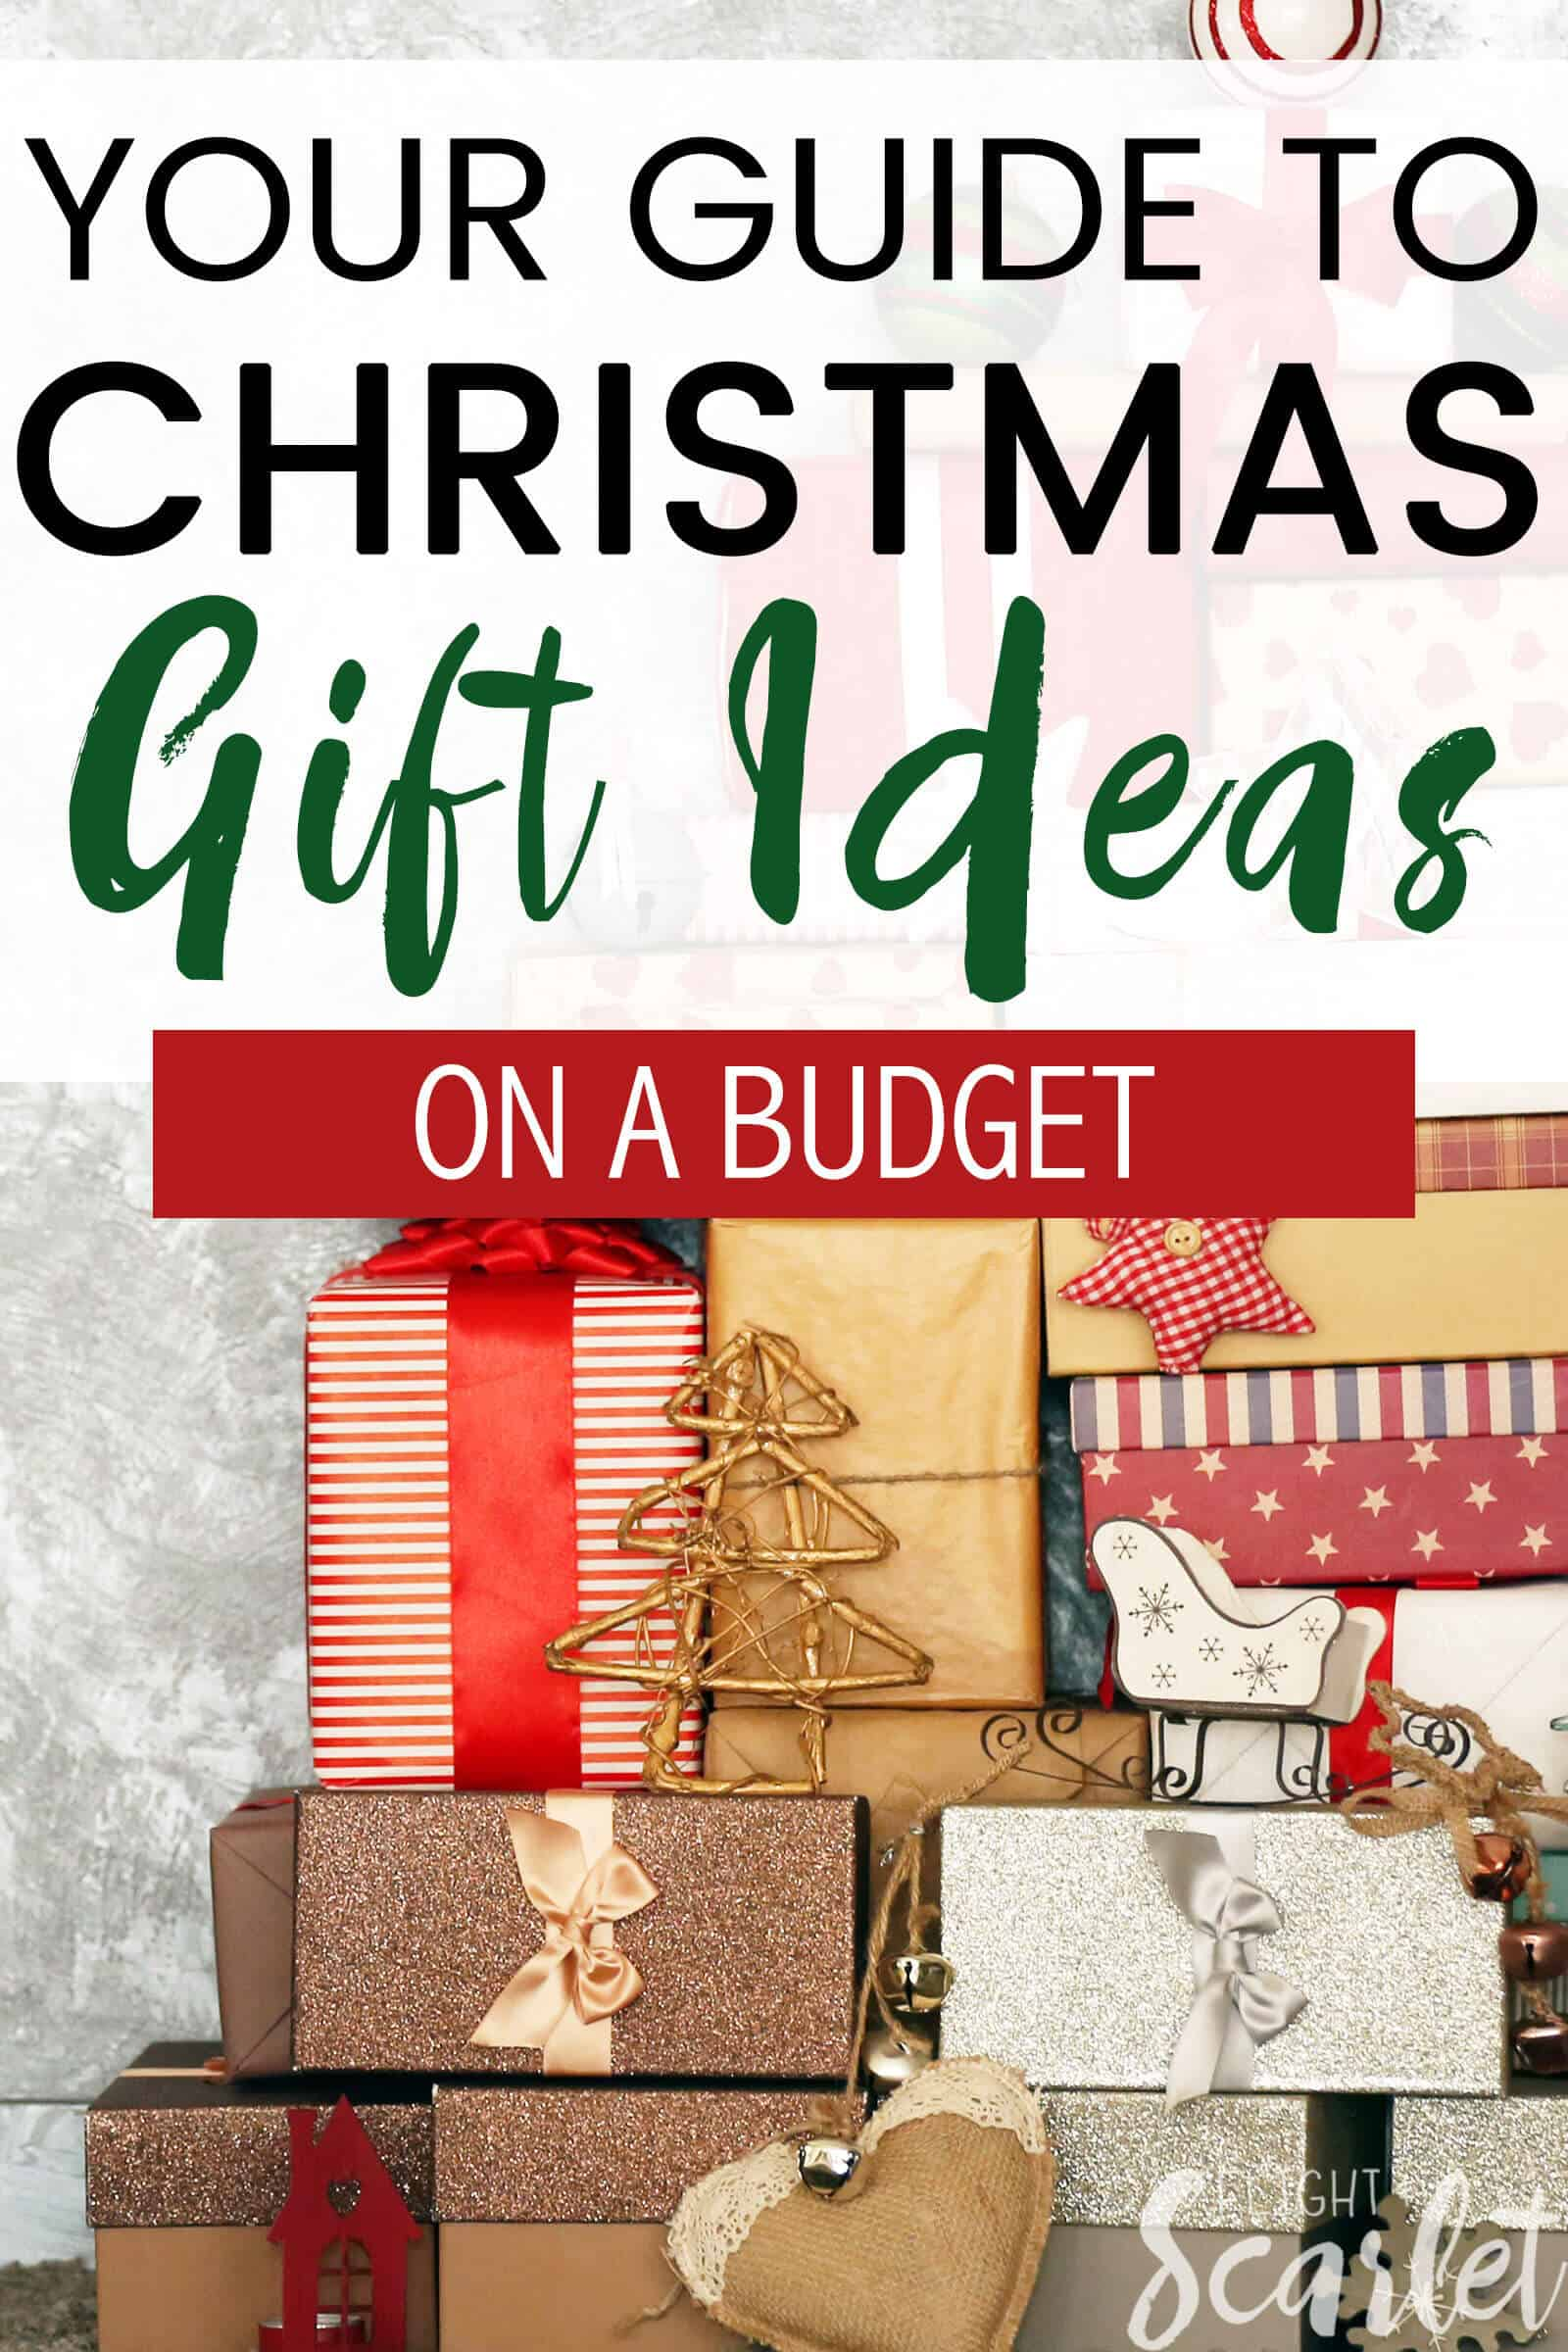 4 Budget Friendly Holiday Decor Ideas For Apartments